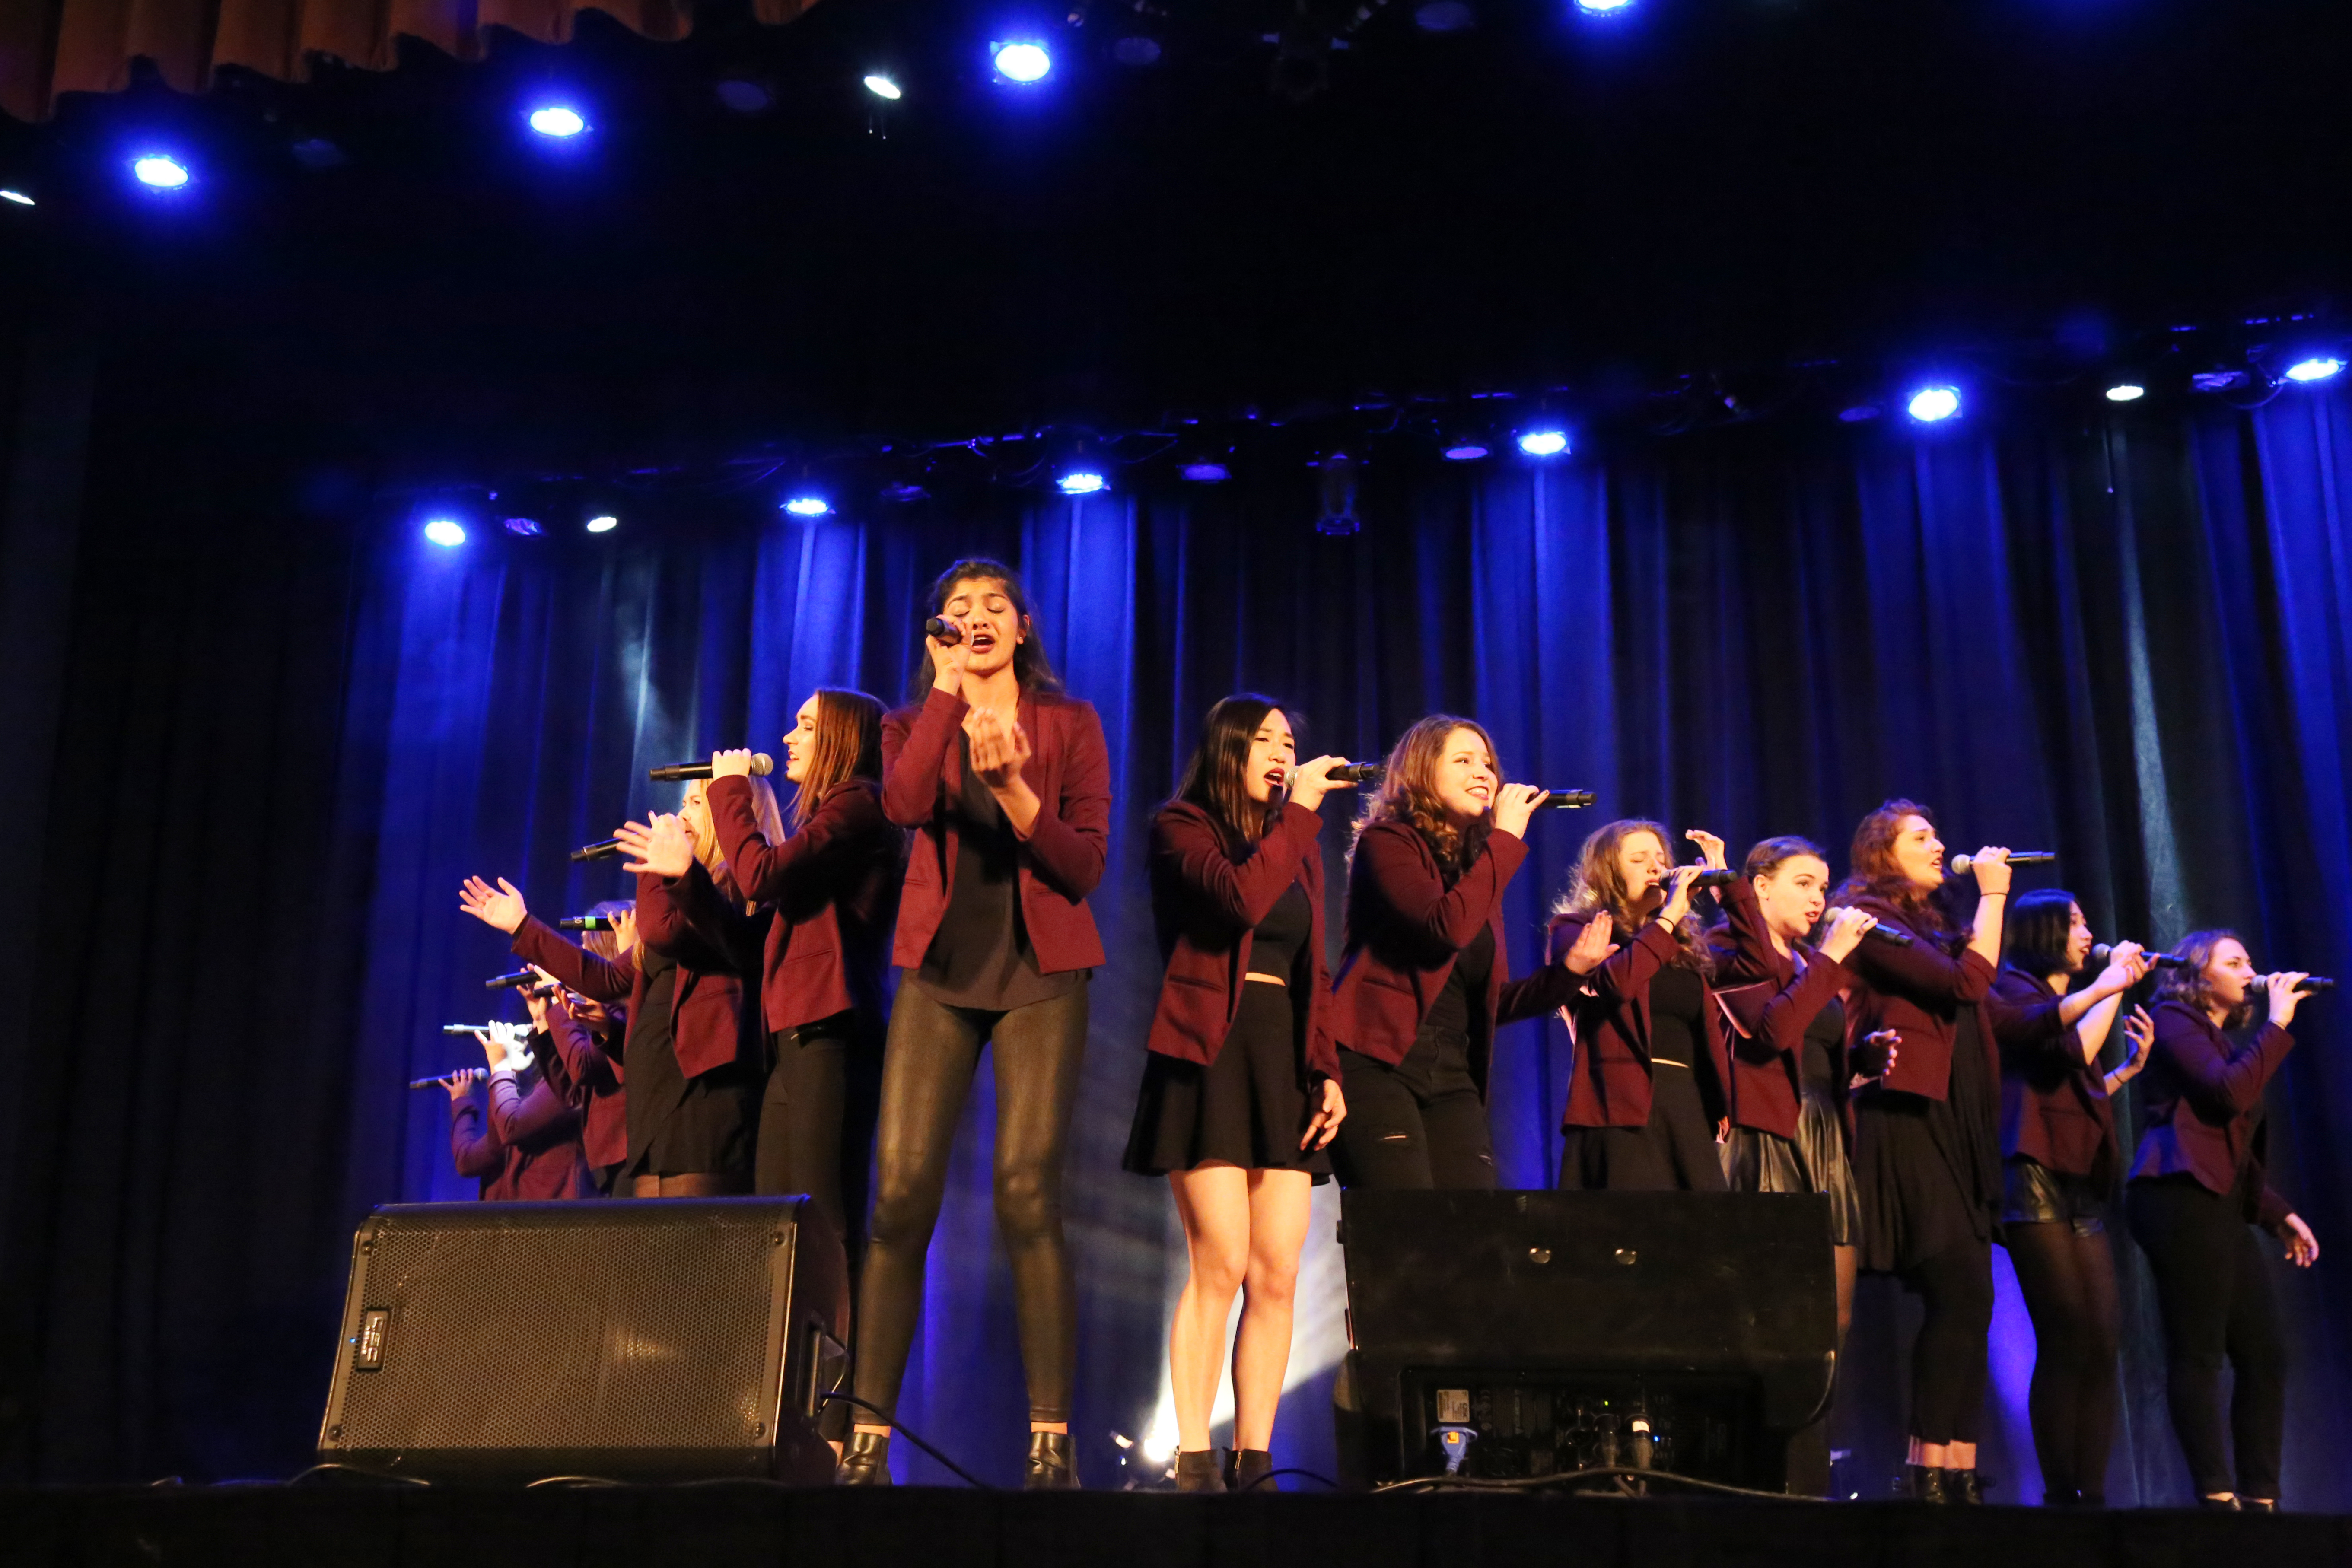 Vocal Point sends seniors off on high note - Campus Times